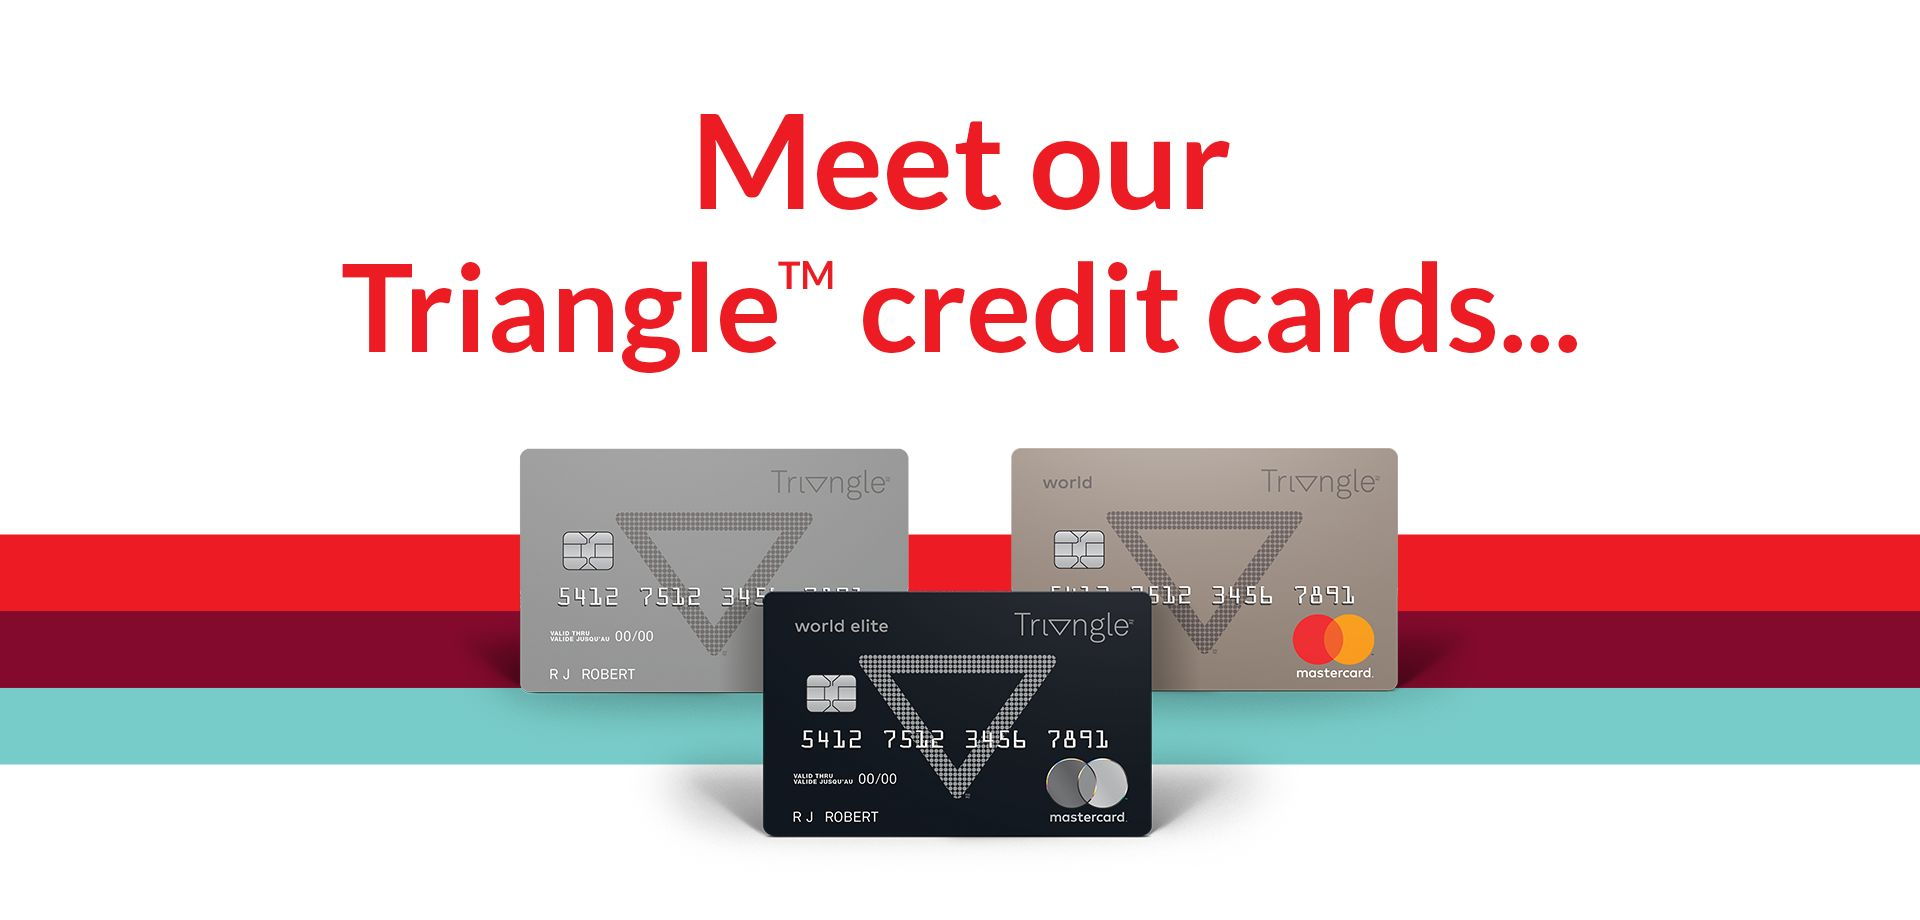 Meet our triangle credit cards